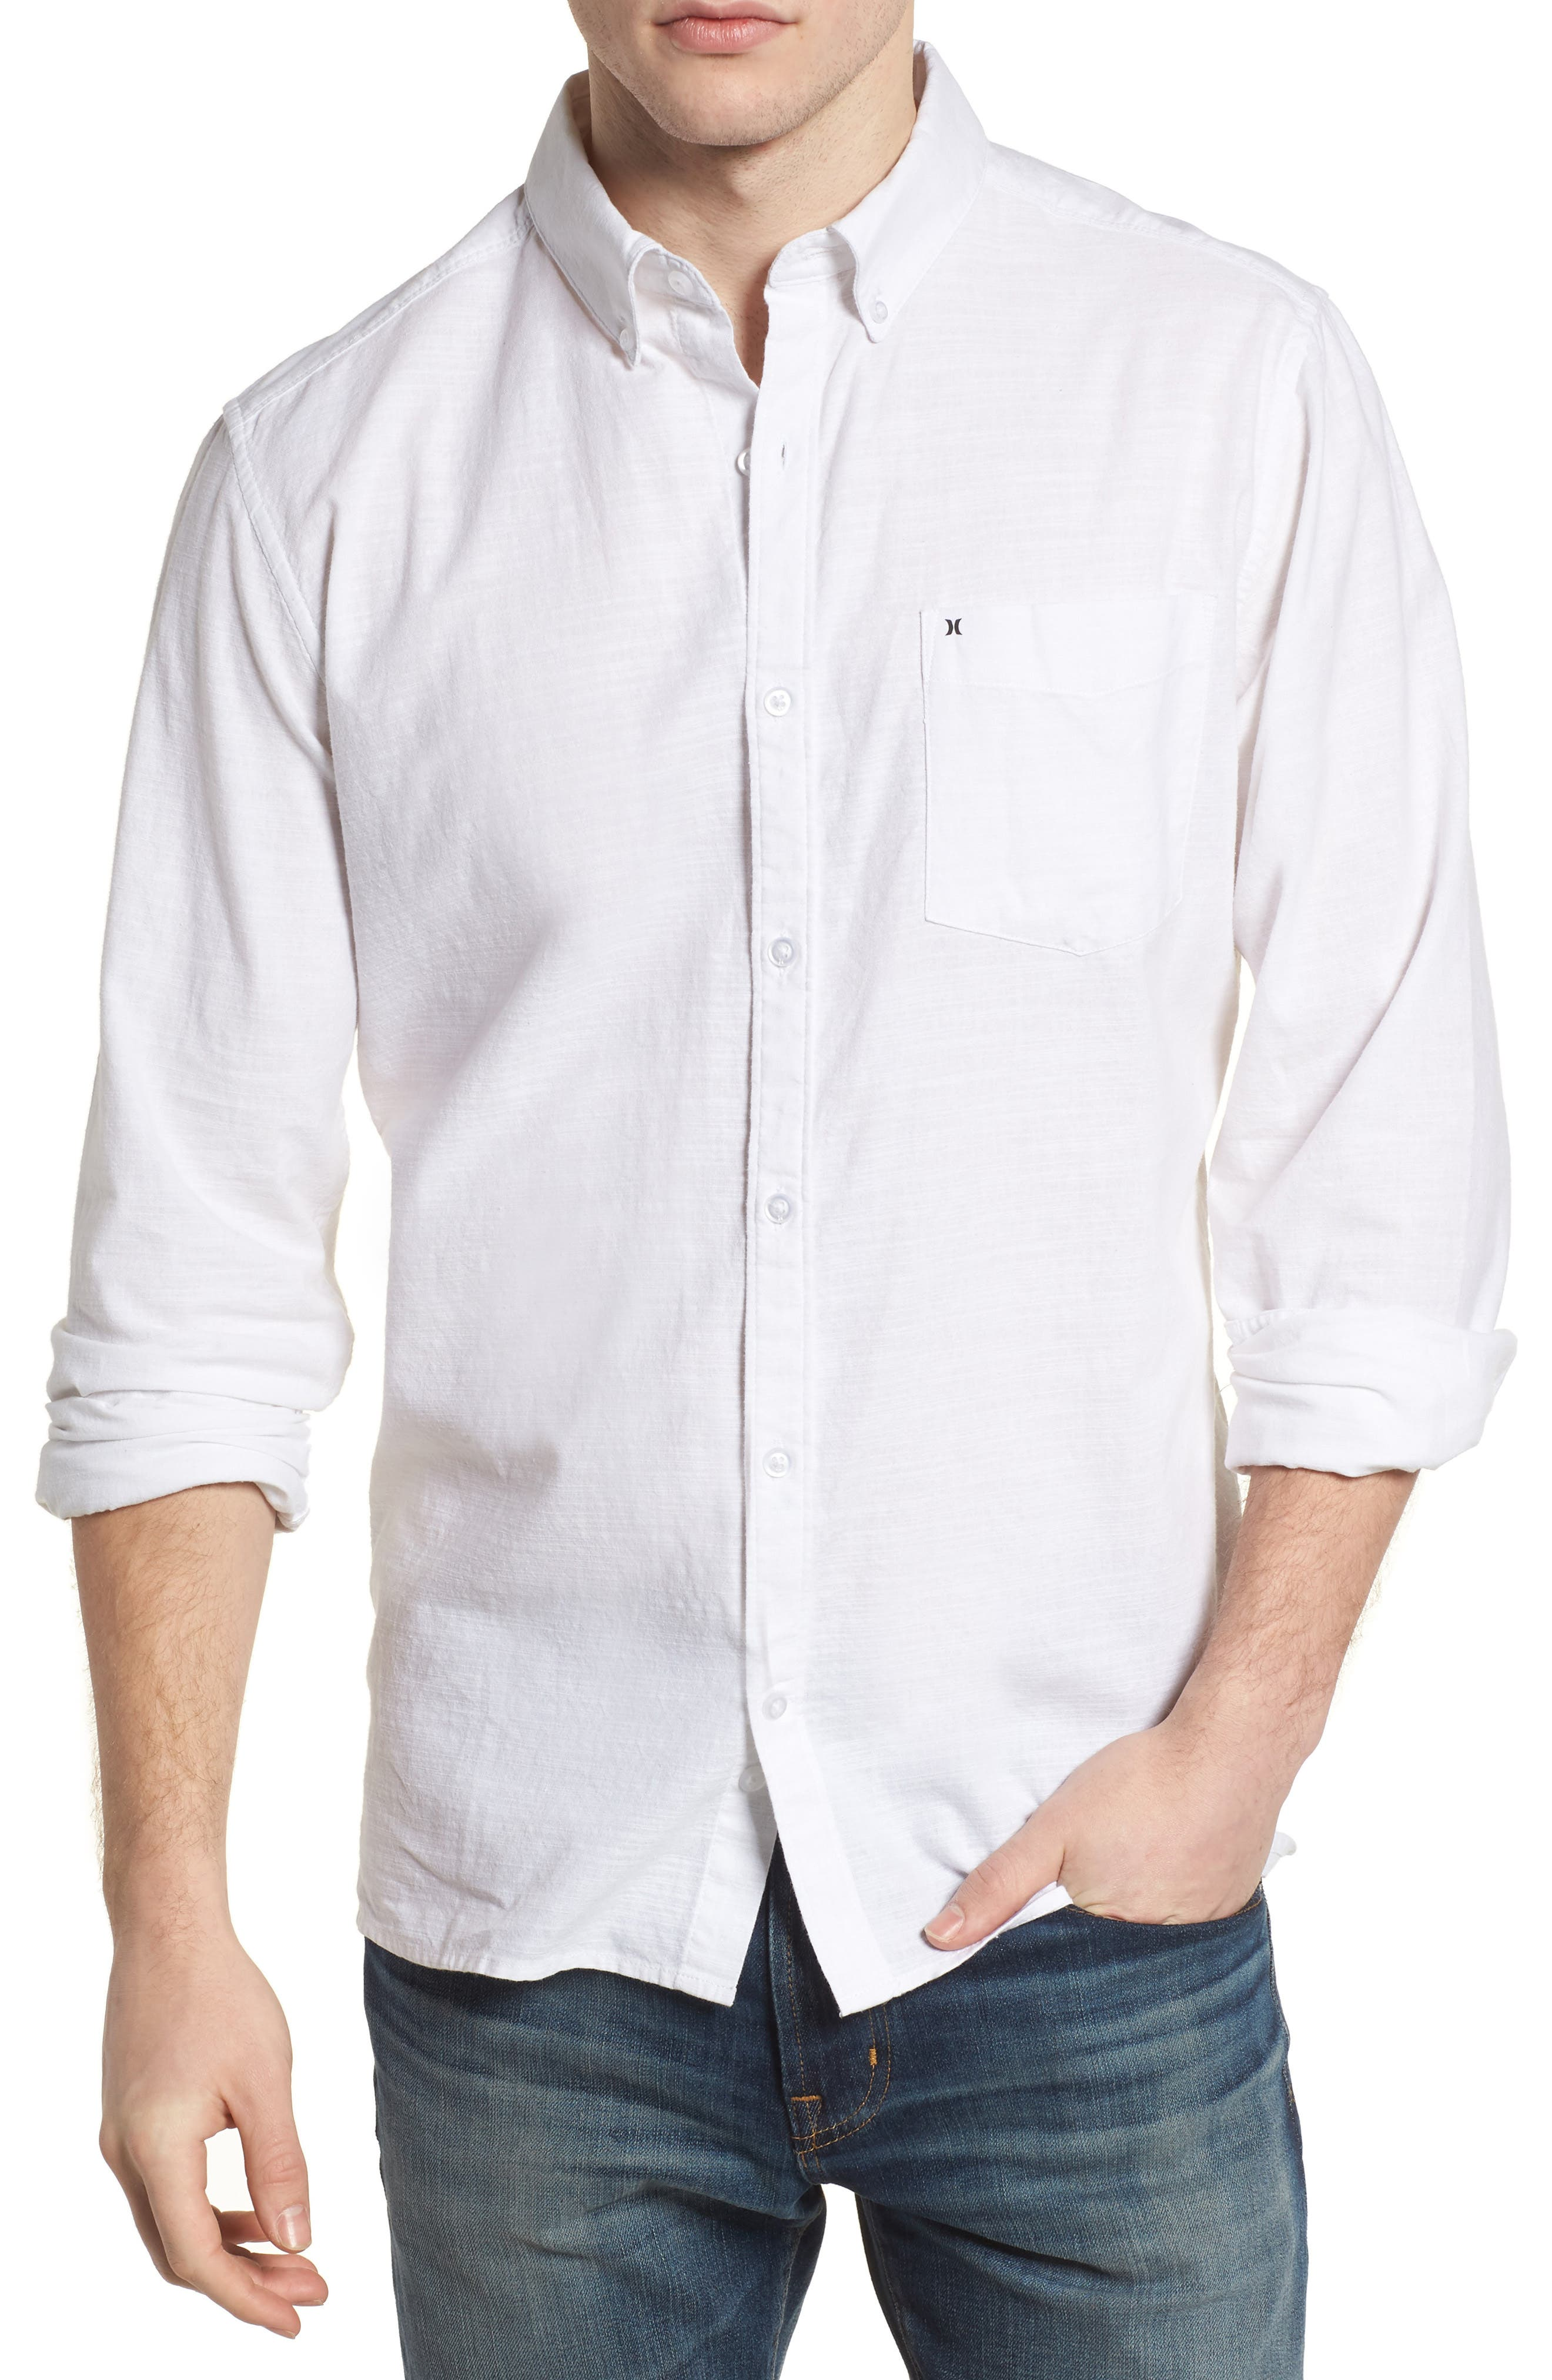 Main Image - Hurley One & Only 2.0 Woven Shirt